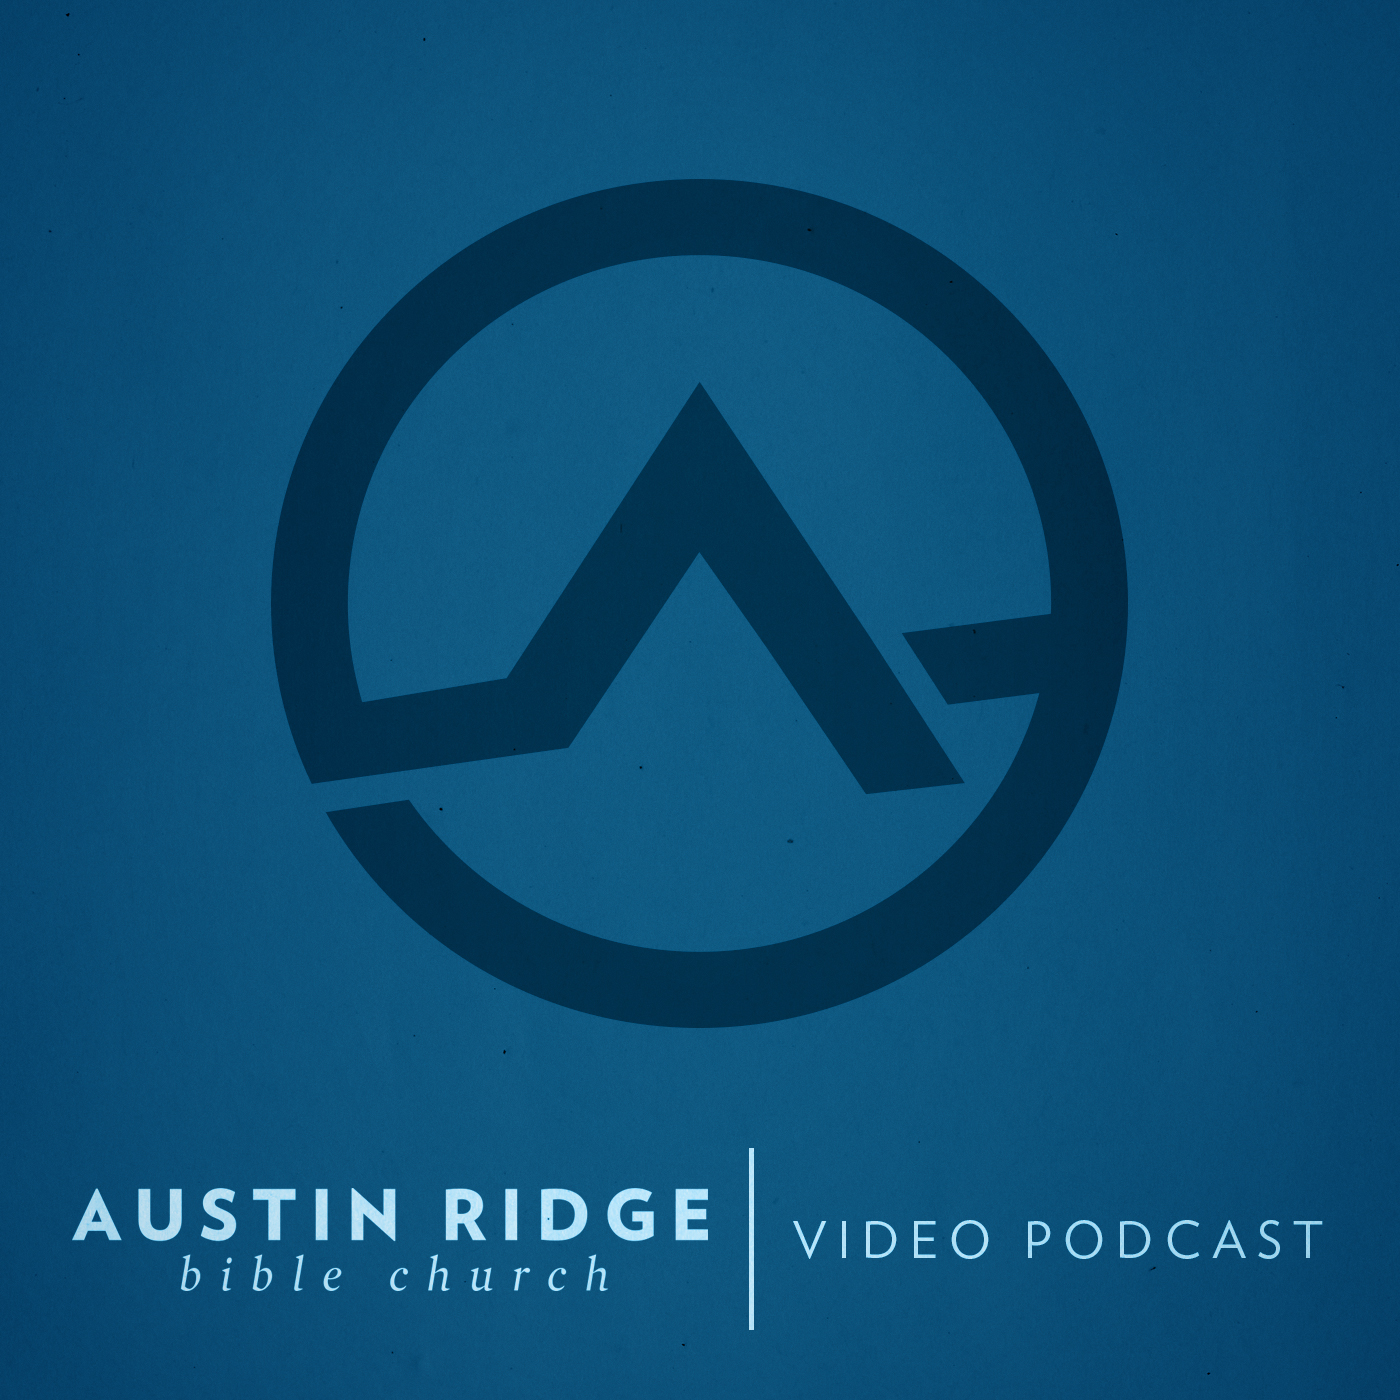 Austin Ridge Bible Church Video Podcast (HD)